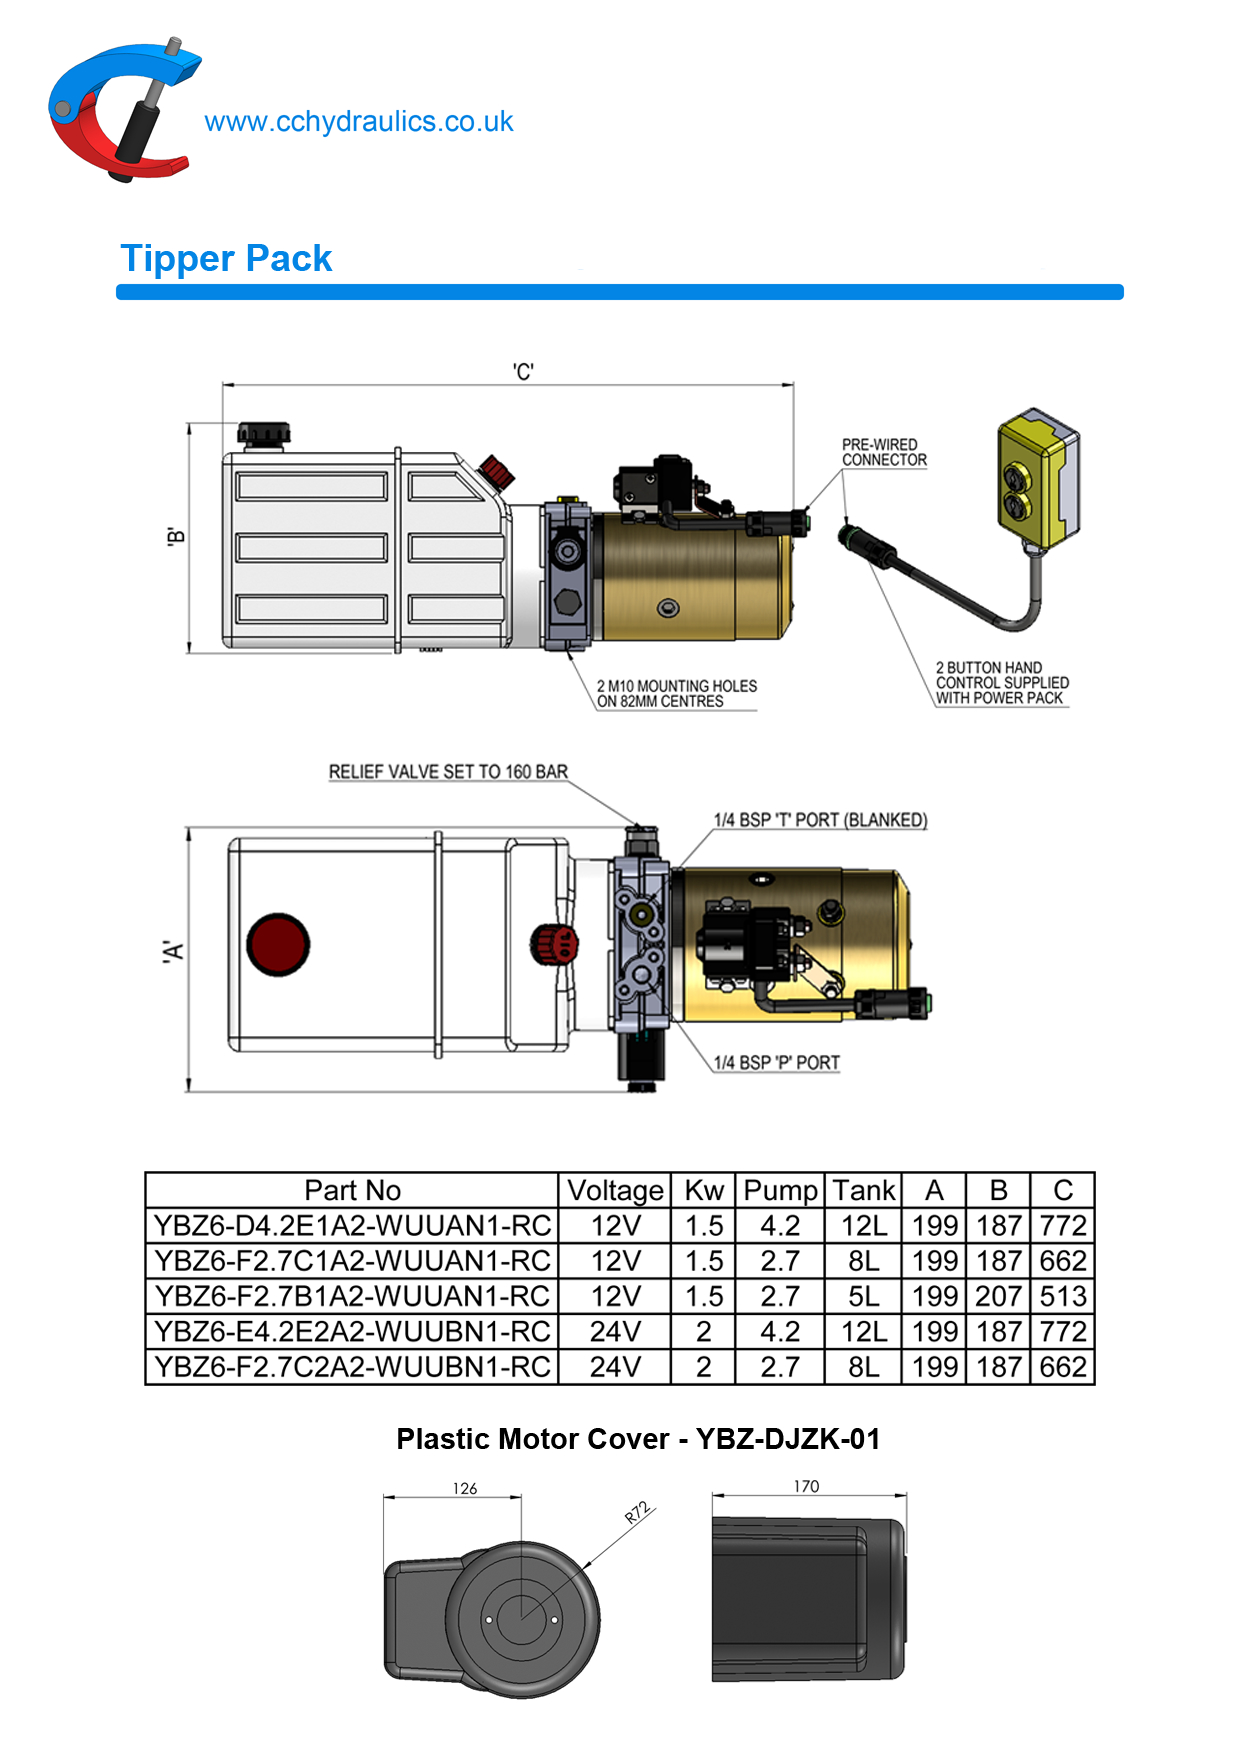 New Tipper Pack Cc Hydraulics Ltd 12v Wiring Diagram For Hydraulic Motor